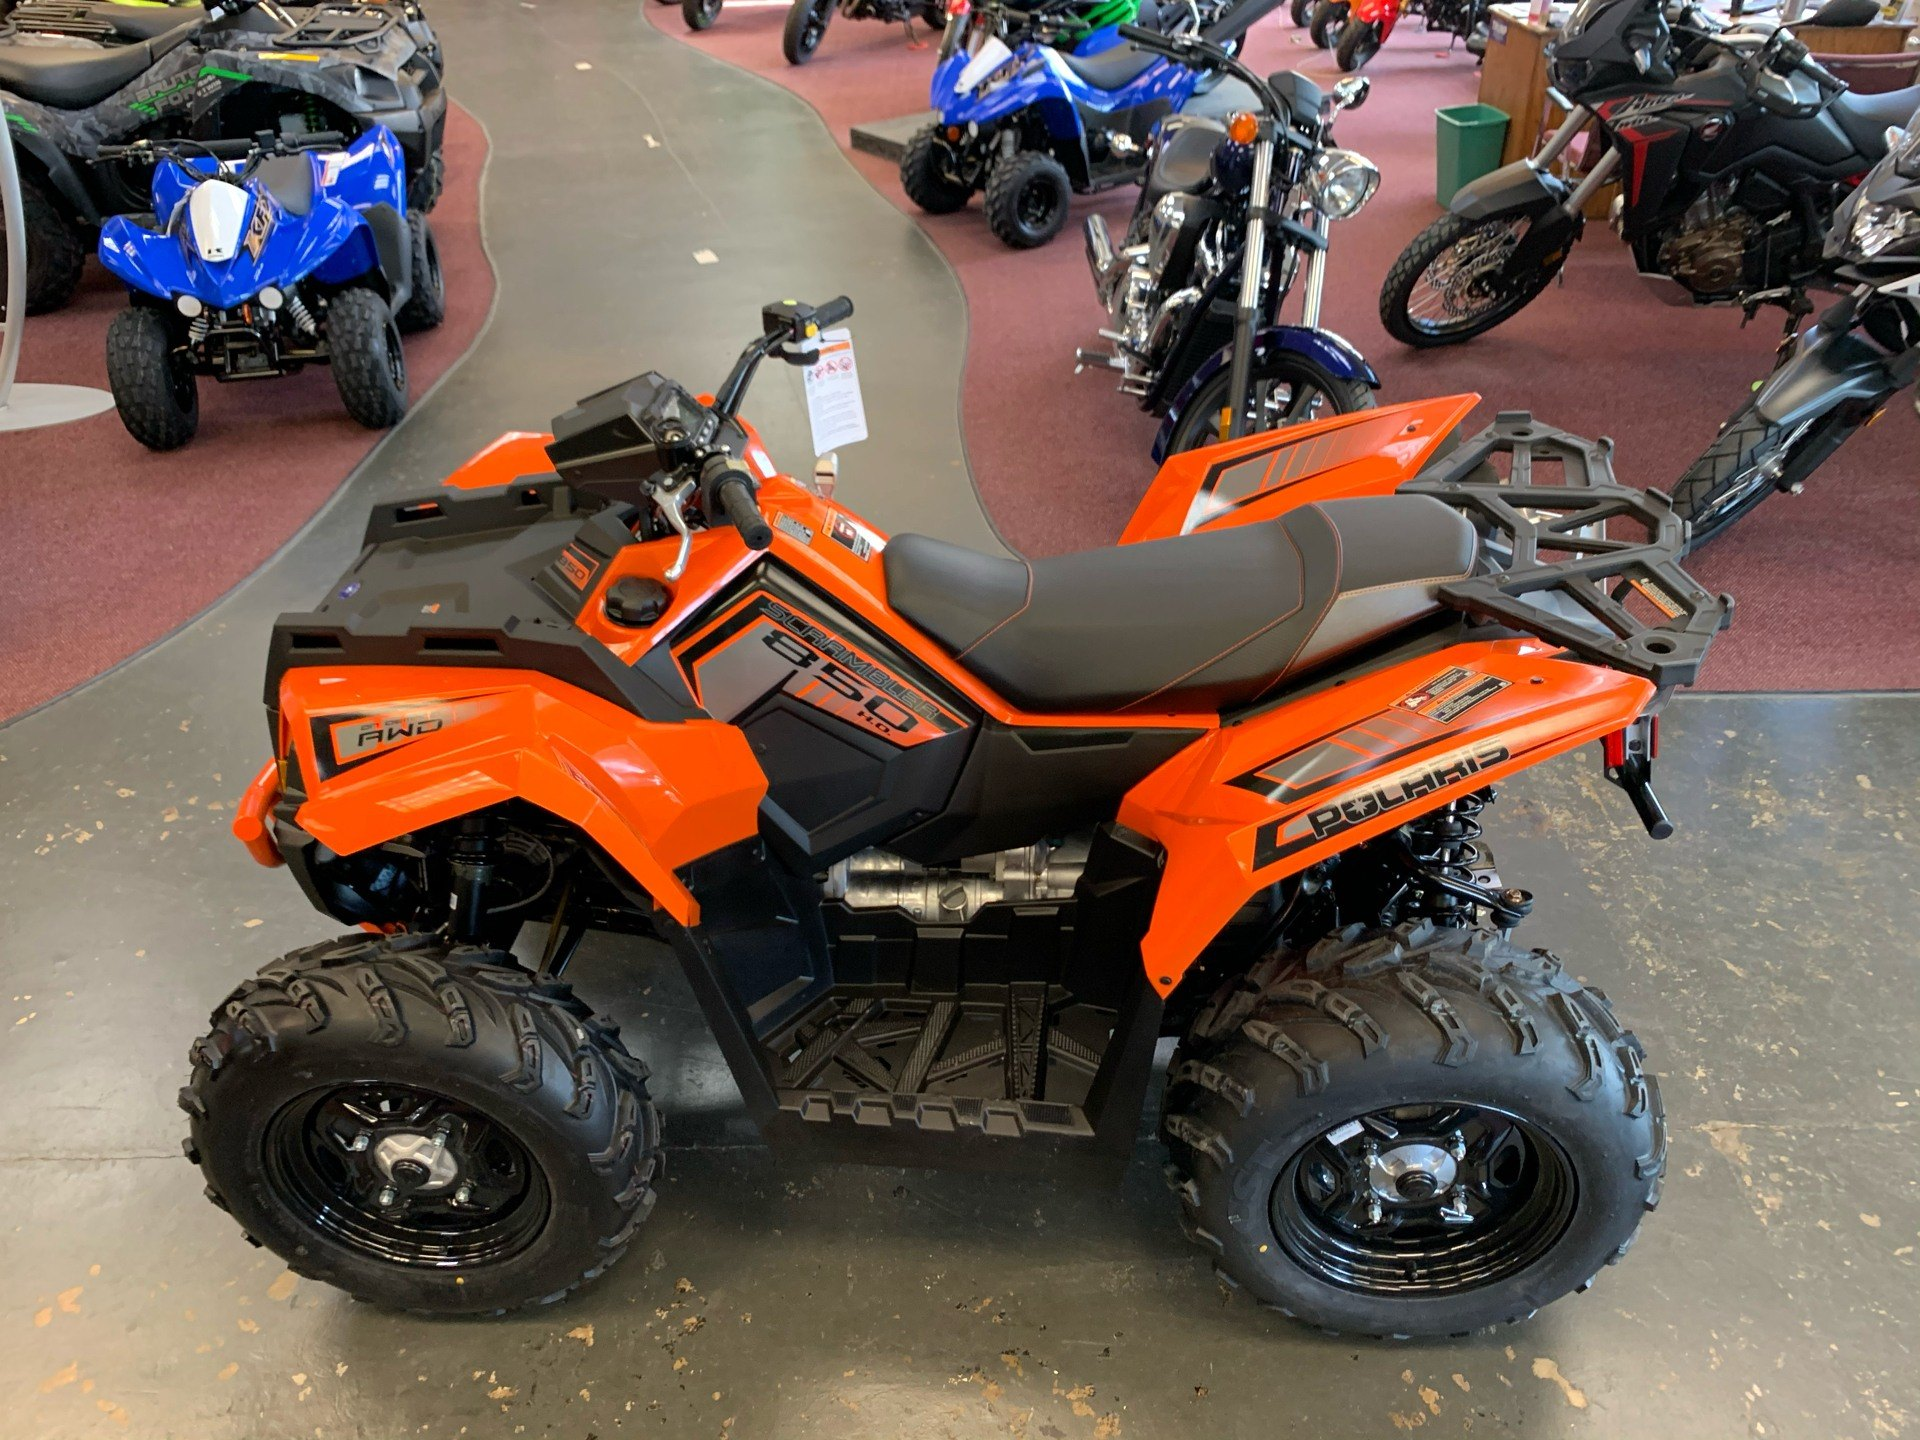 2020 Polaris Scrambler 850 in Petersburg, West Virginia - Photo 11